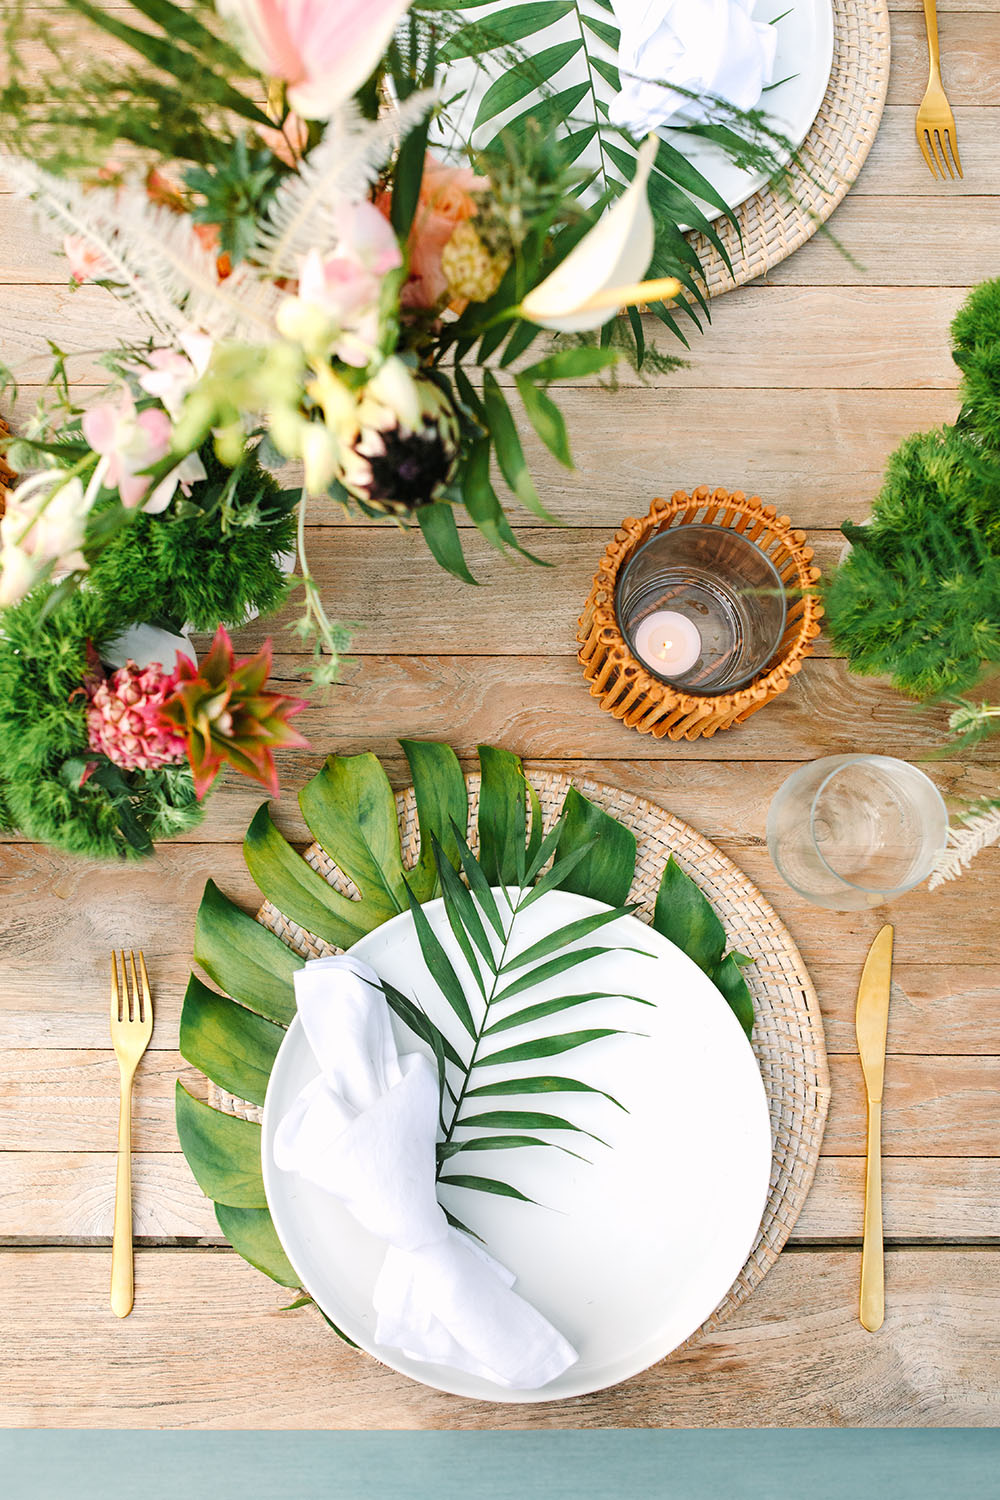 10 charming table settings to inspire your next dinner party or event. Table settings are one of my favorite things about entertaining, but I know they can be a hassle. #TableSetting #entertaining #Design #Tablescape